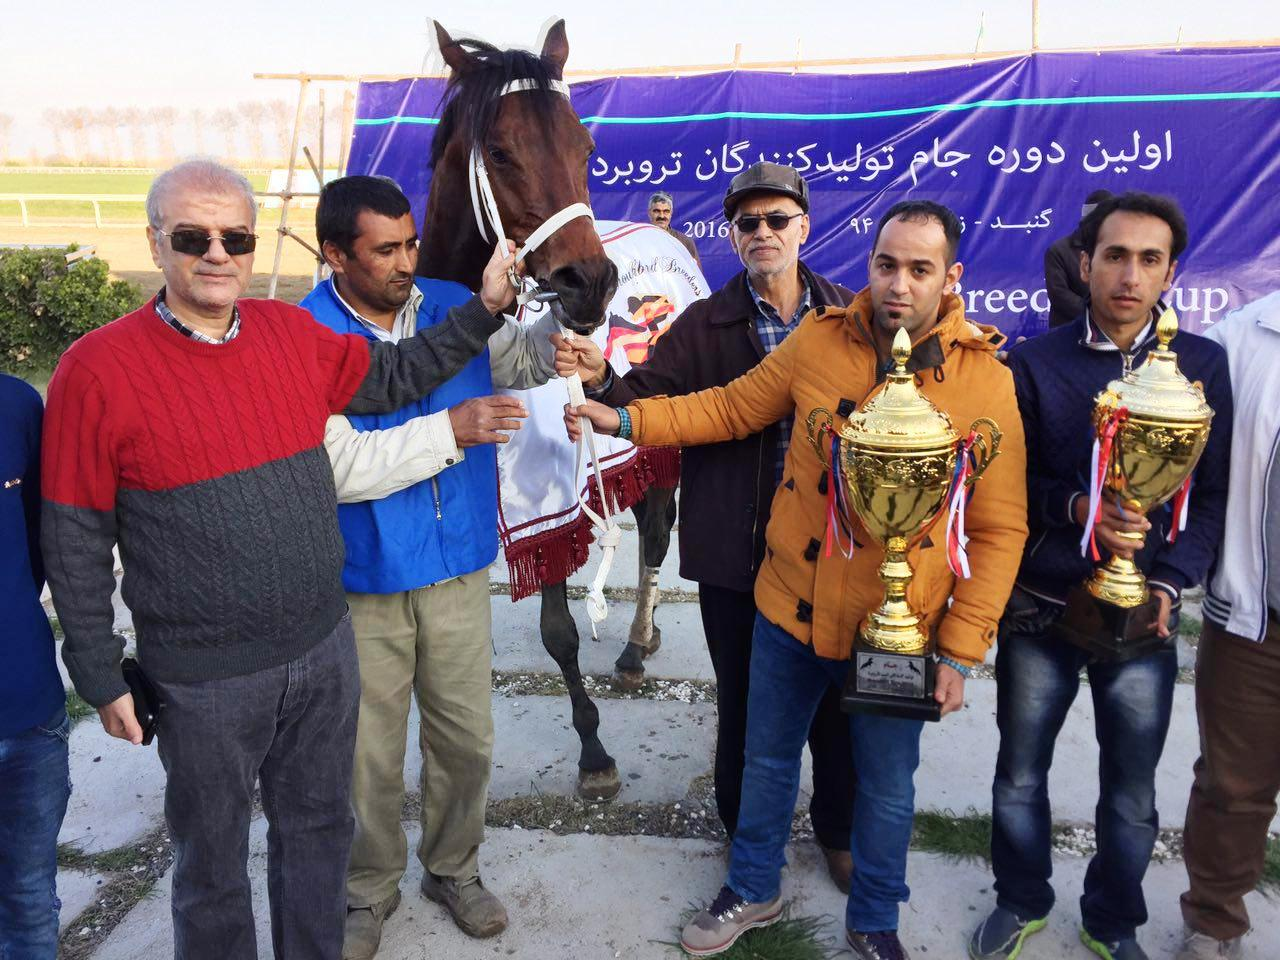 Carrera a 3 years old colt by Pomellato in first derby in Iran